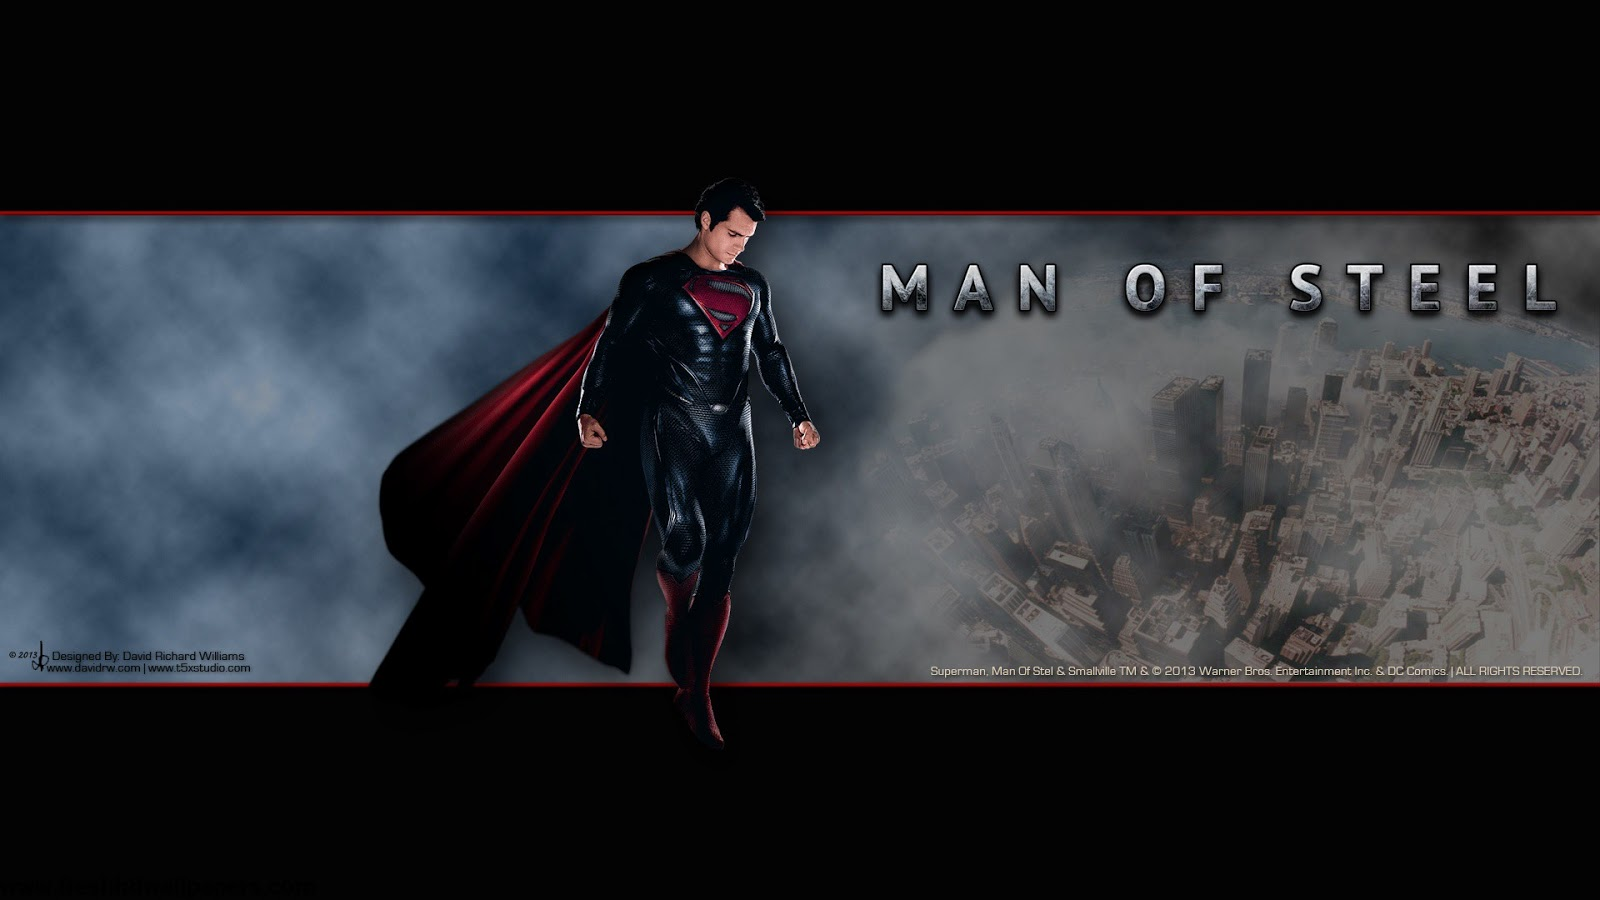 of 5 man of steel hd widescreen wallpaper download 5 man of steel hd 1600x900